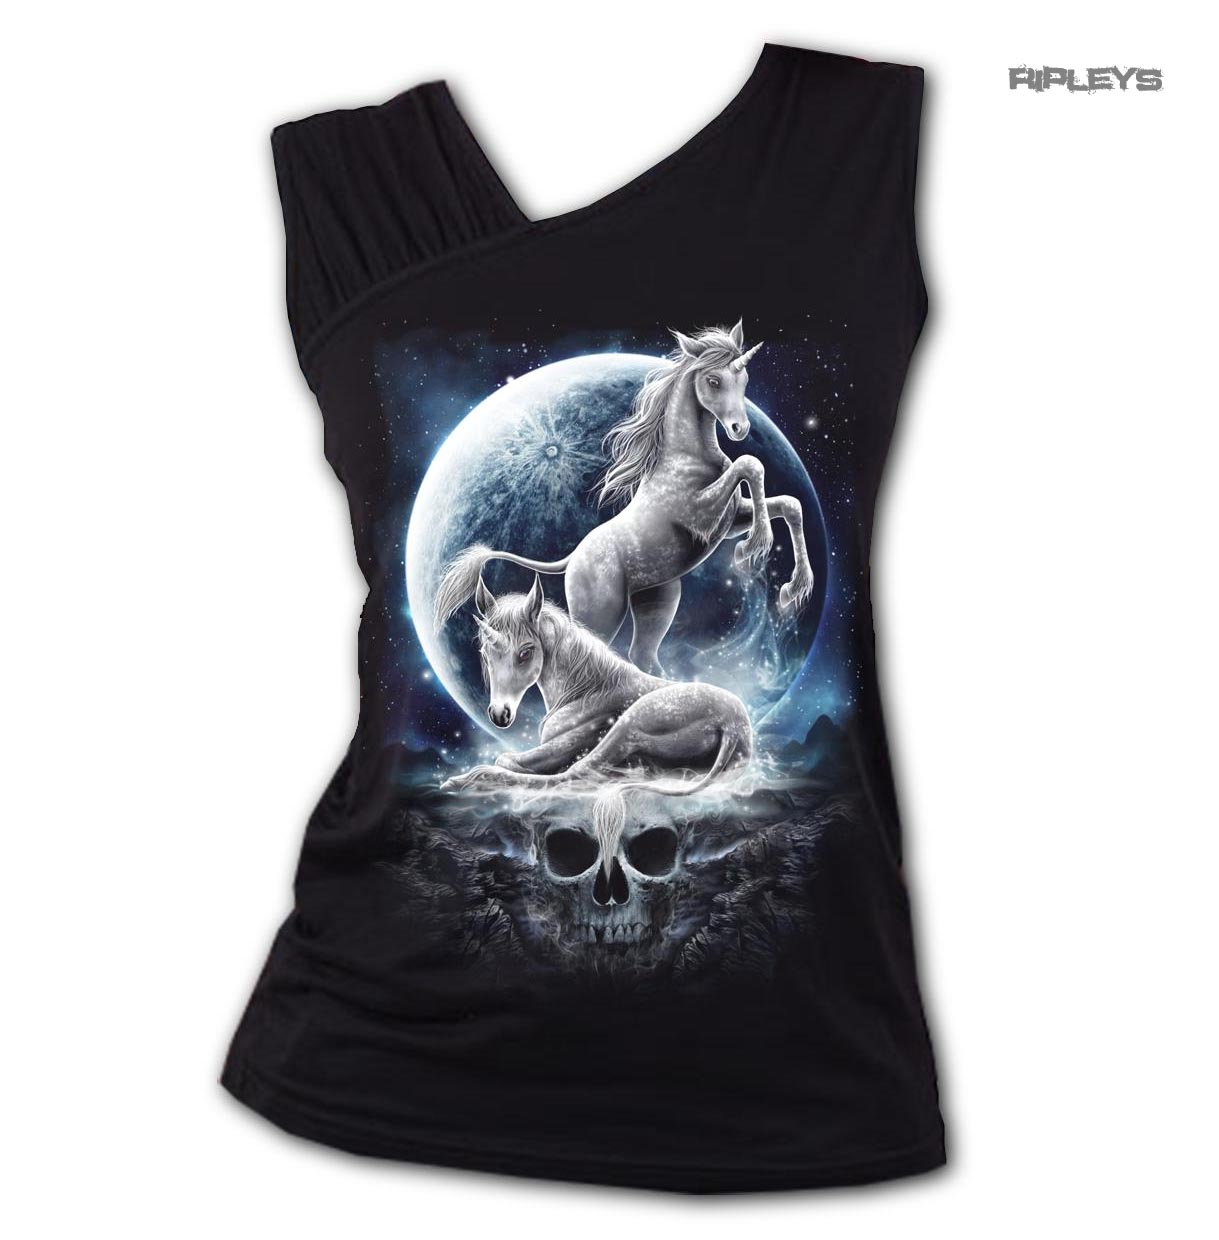 SPIRAL-Ladies-Black-Gothic-BABY-UNICORN-Moon-Skull-Slant-Vest-Top-All-Sizes thumbnail 4